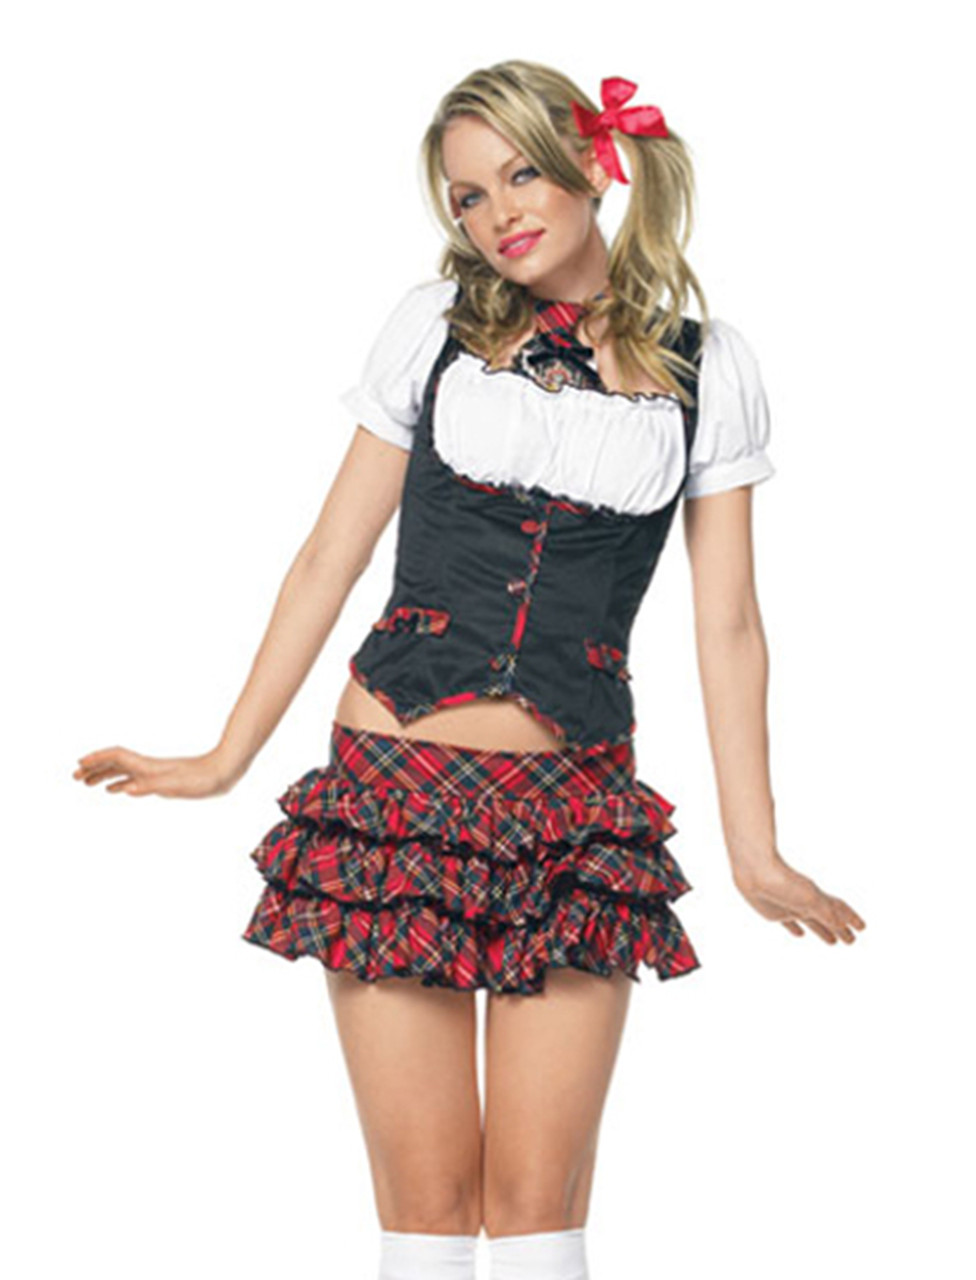 Leg Avenue Little Miss Naughty School Girl Costume La-83355-7628